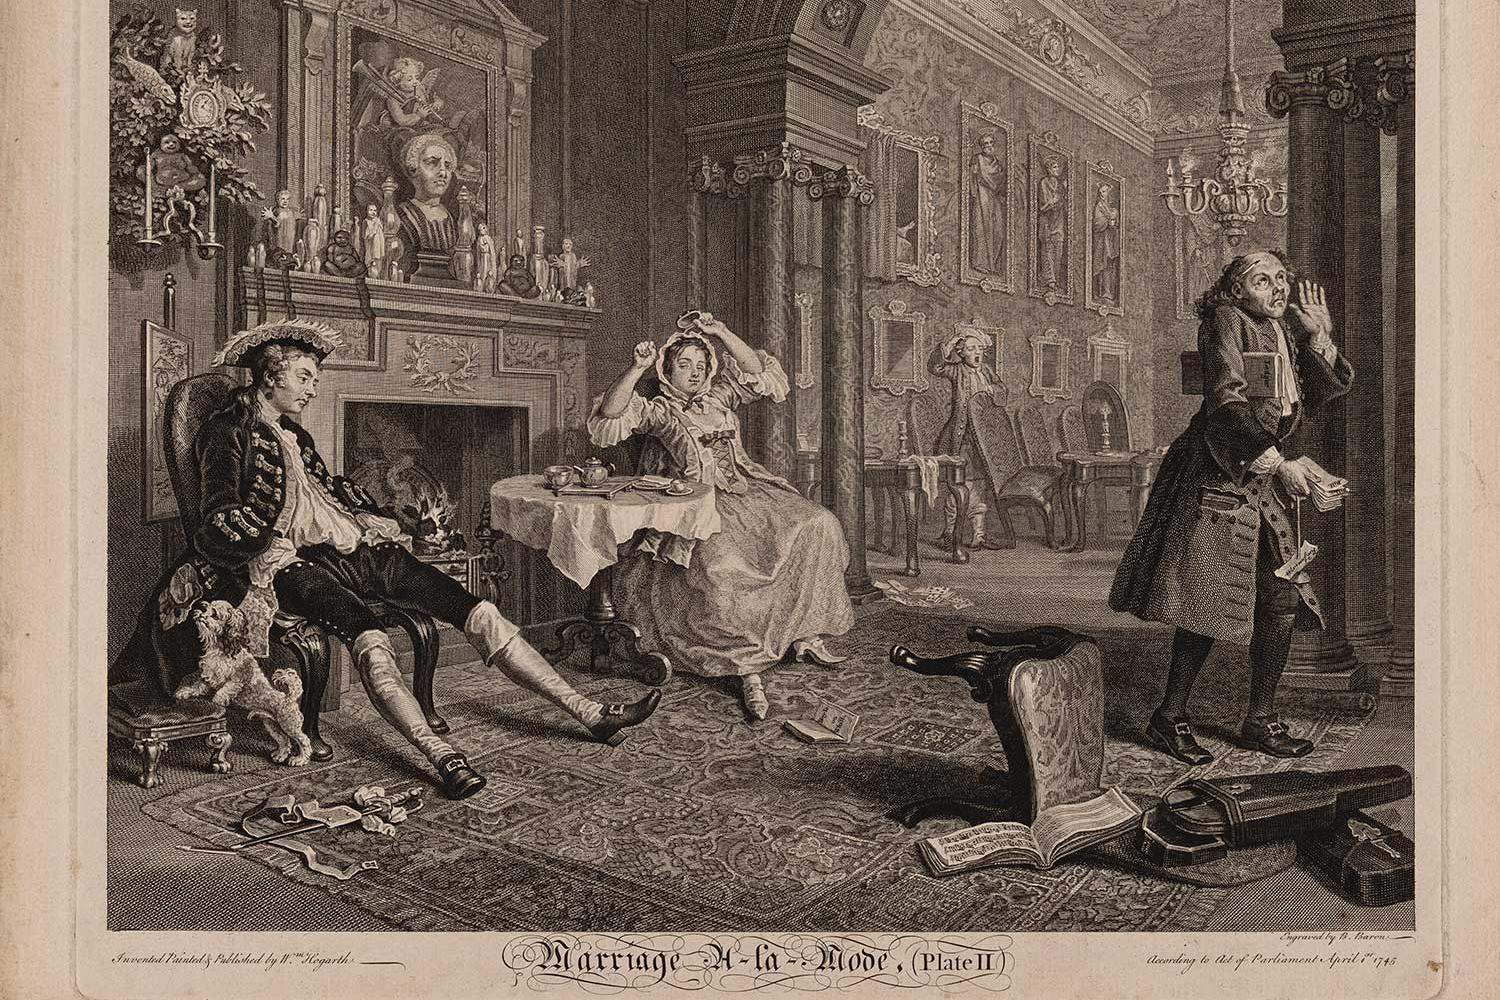 print of a domestic scene of a woman and two men